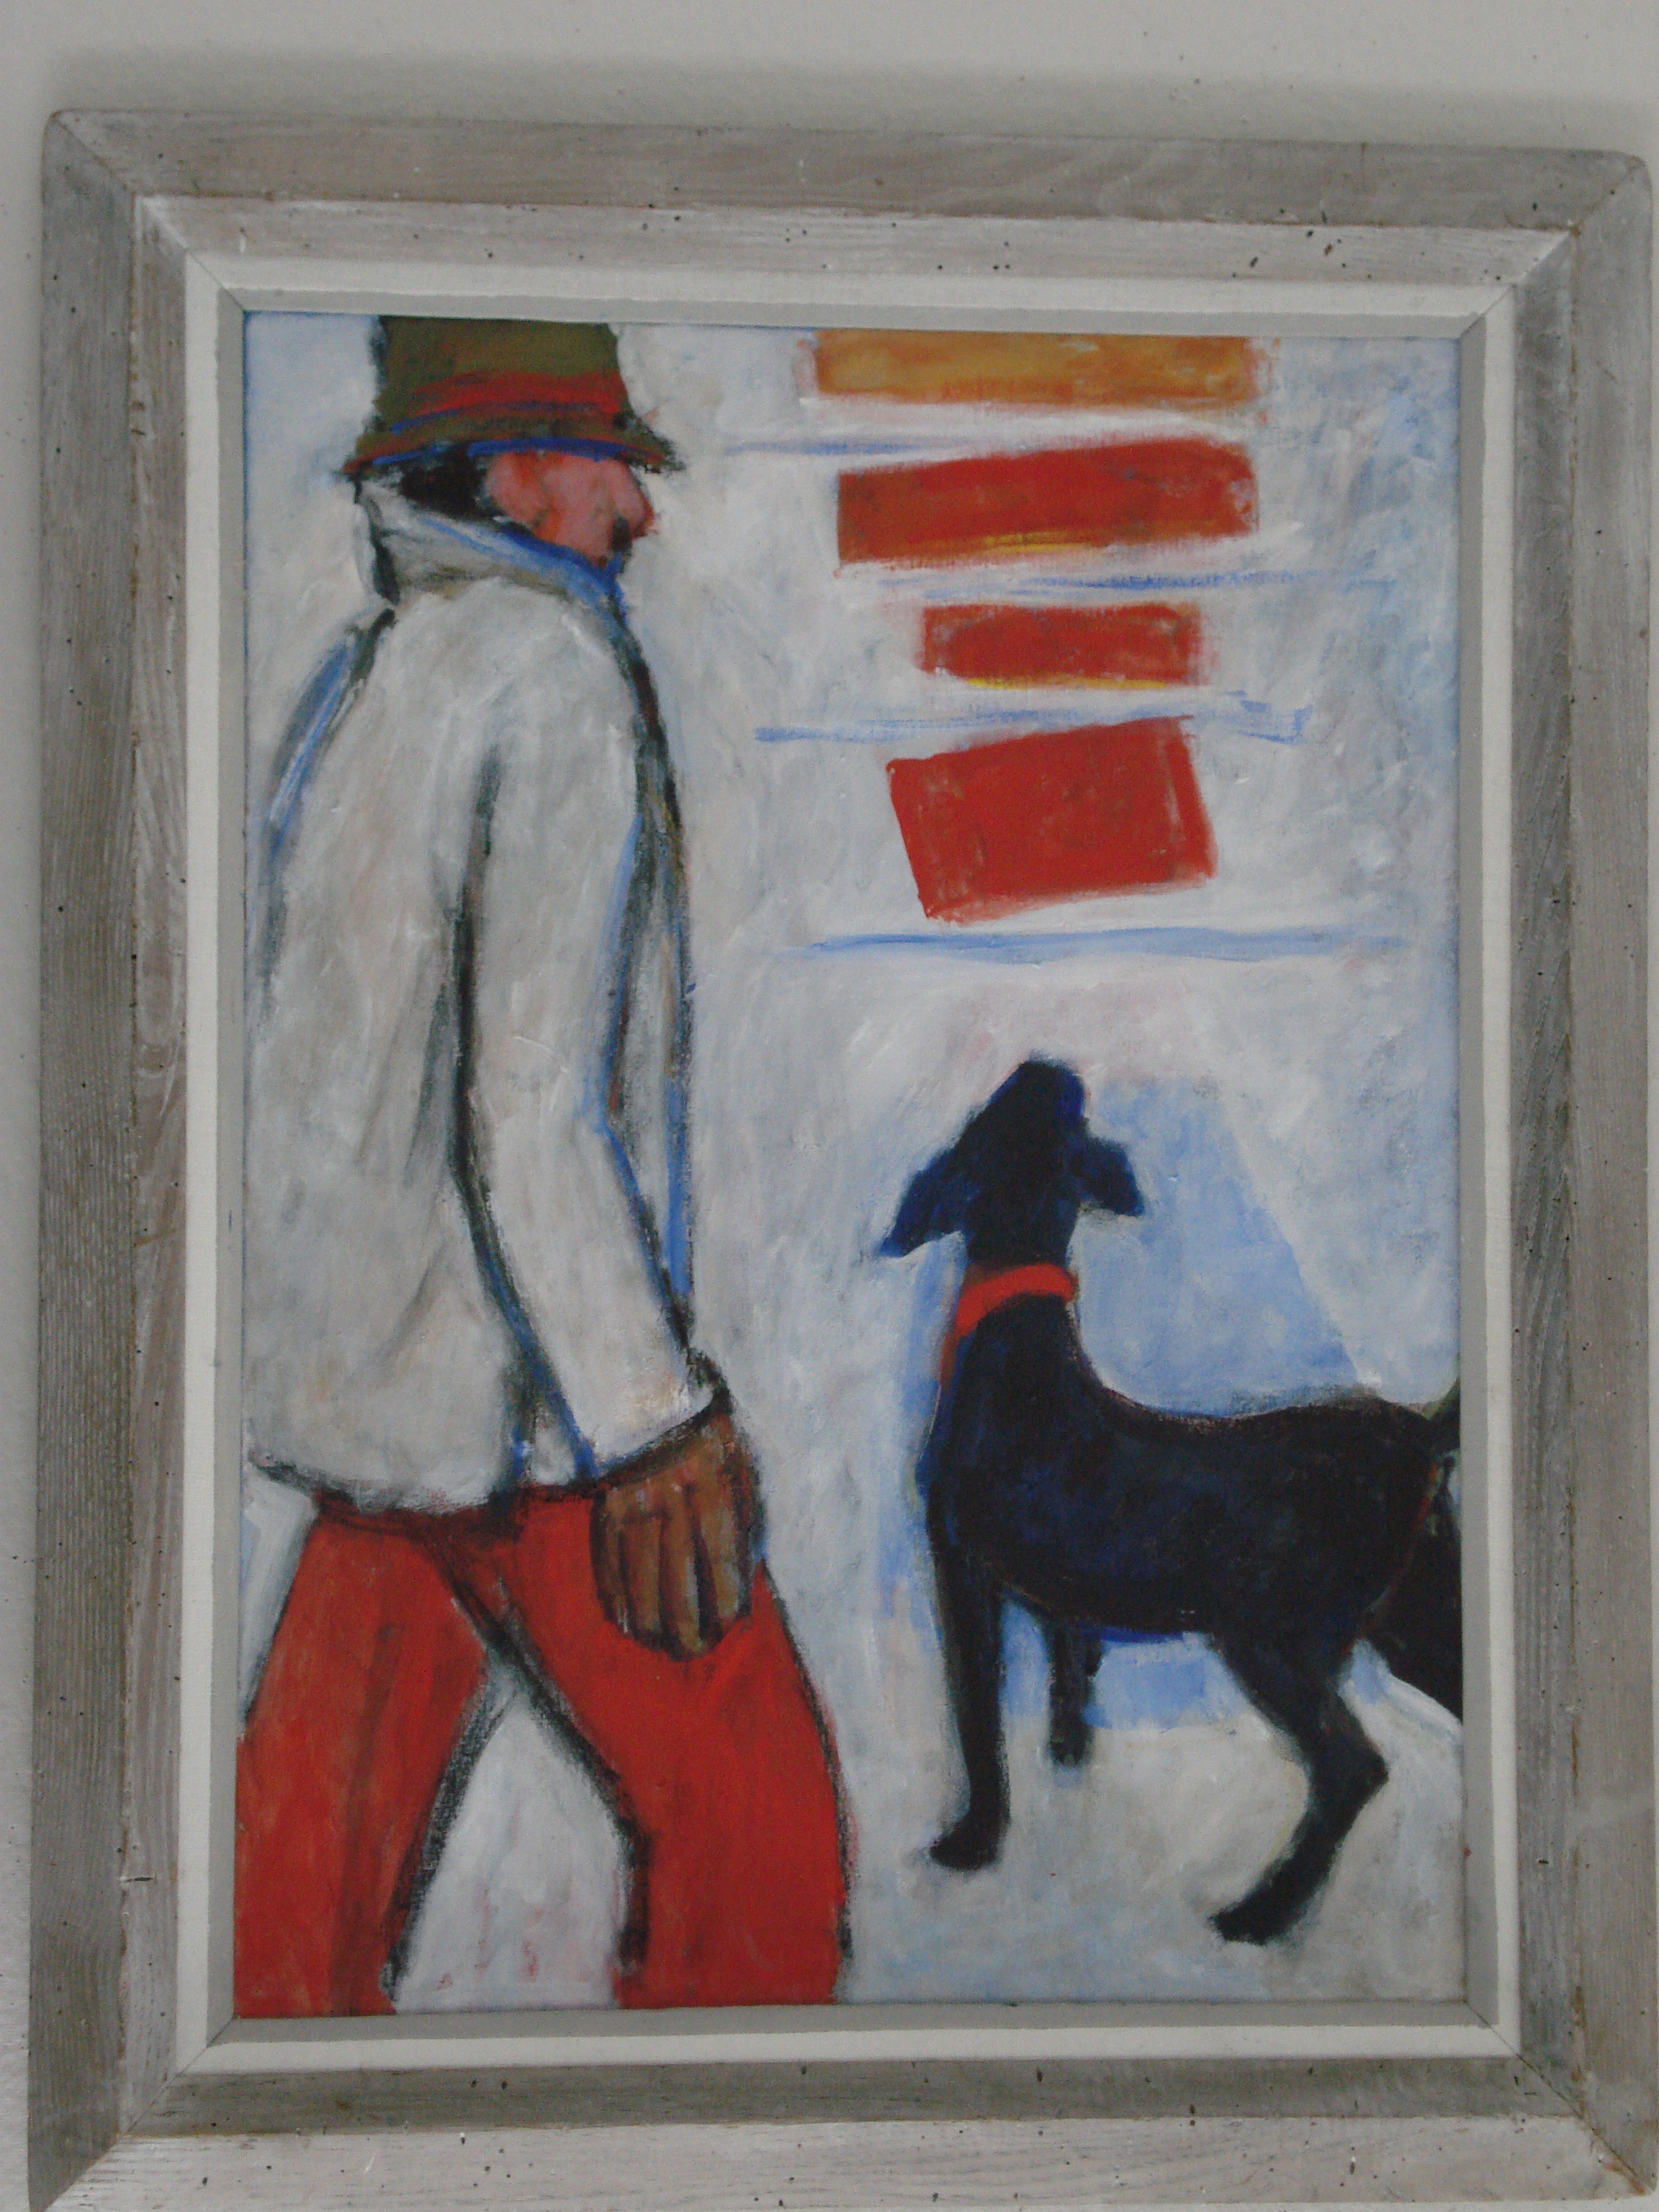 Thomas Barrett - Man with DogOil on Canvas36 x 24 inches